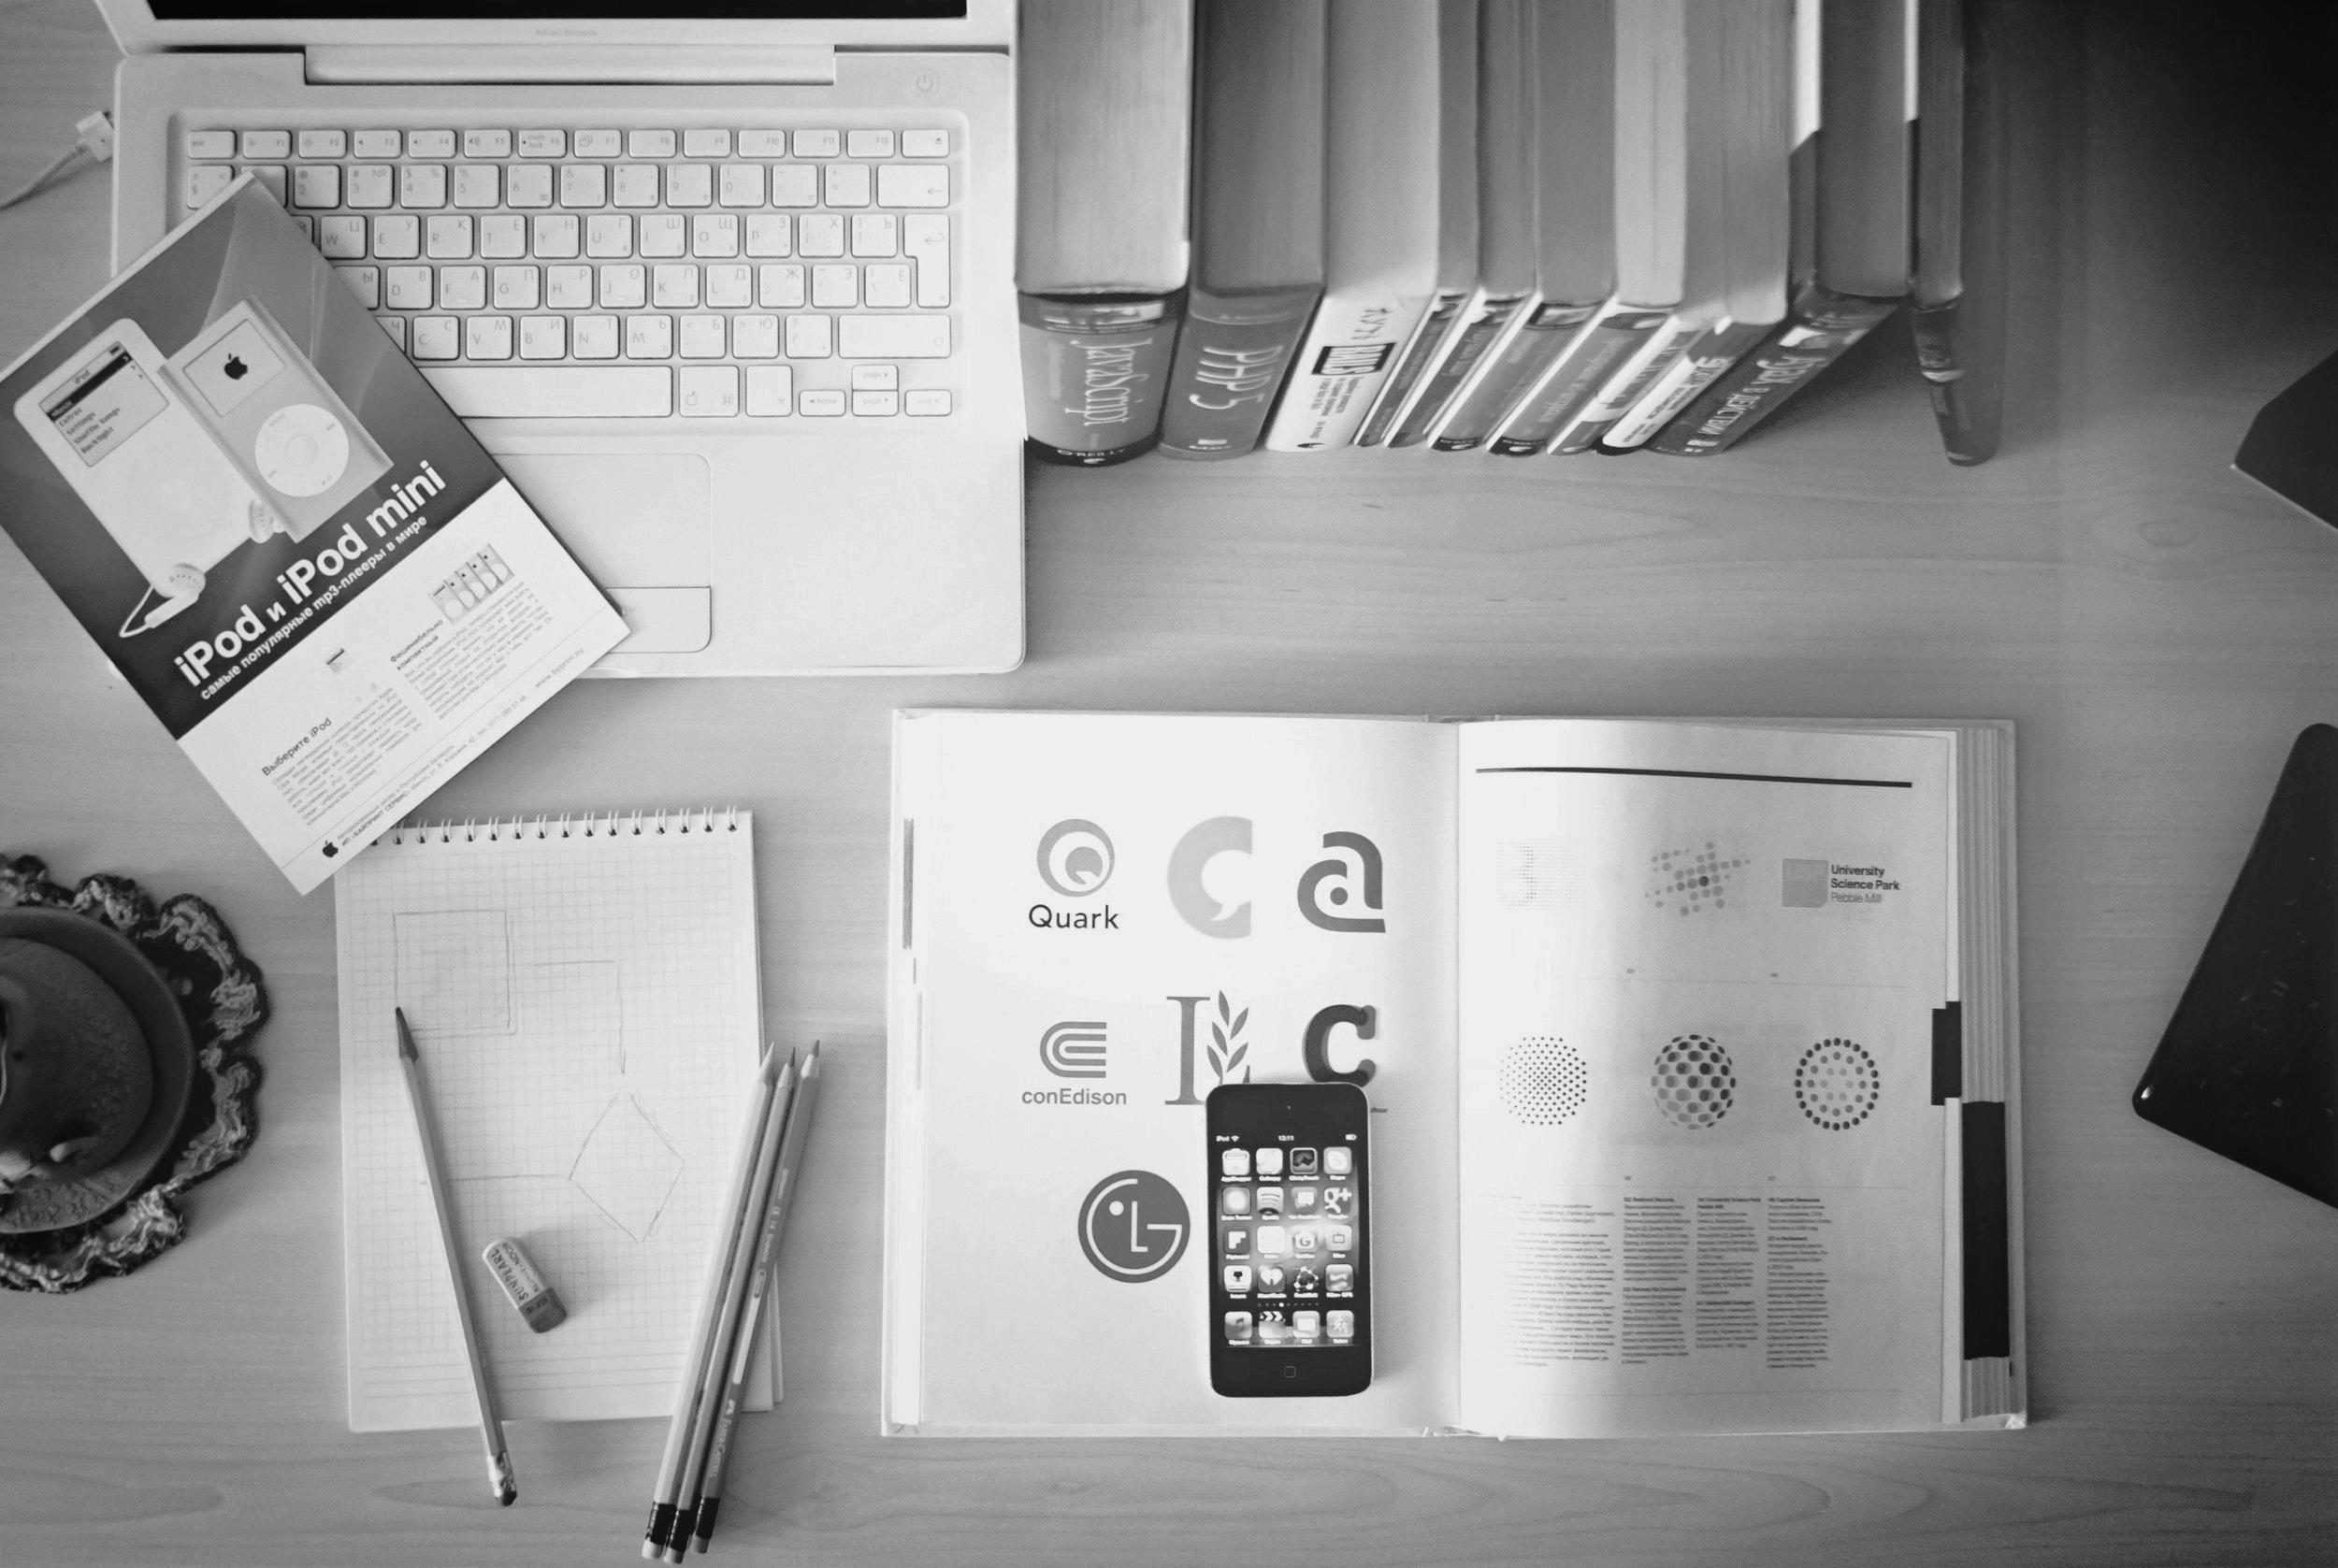 Integrated services   As an integrated consultancy, we use digital and social media to support our campaigns across owned, earned, and paid media. This approach allows for effective two-way communications resulting in the best outcomes for our clients.